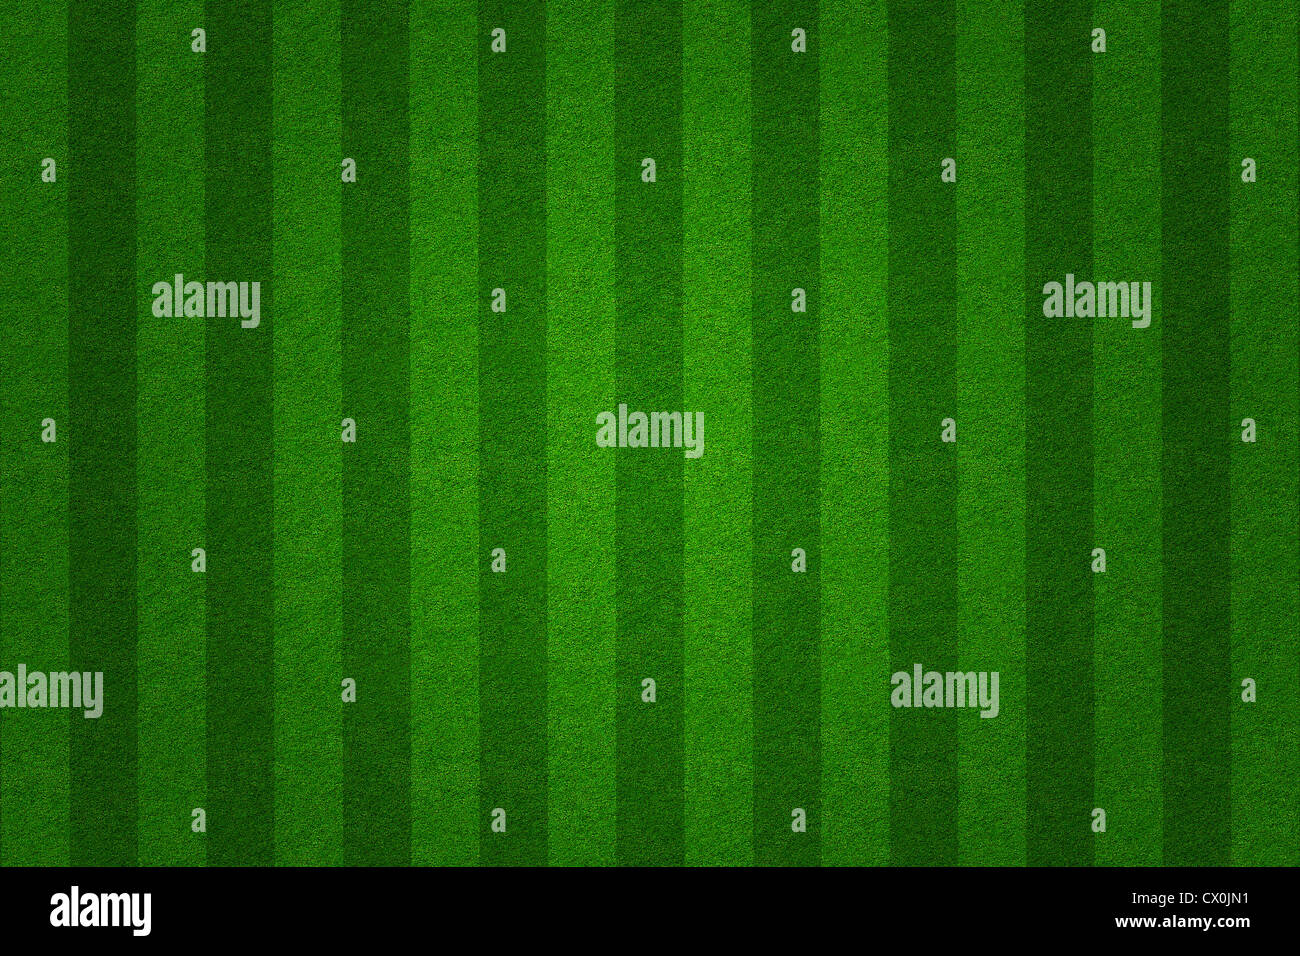 green grass soccer field background - Stock Image